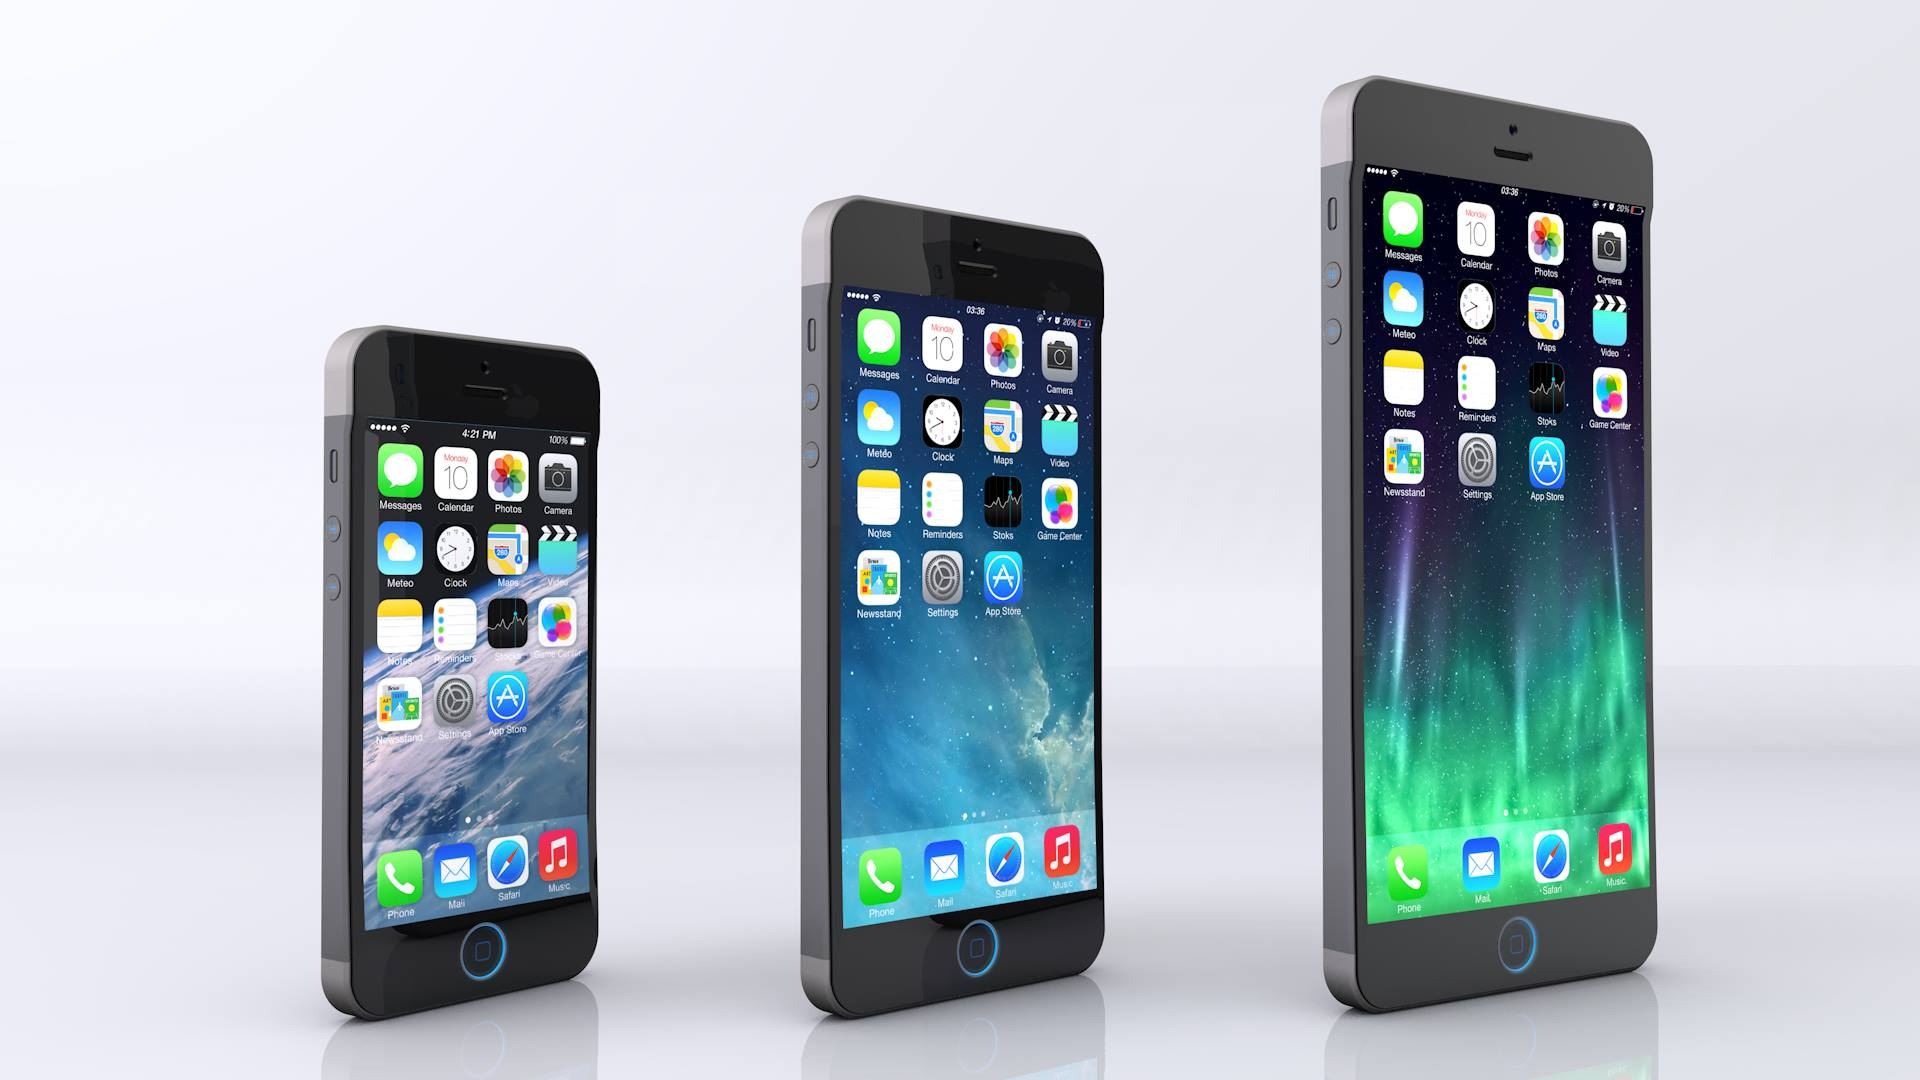 The Latest Apple 'iPhone 6' Concept Video Shows 3 New Handsets Putting On A Show